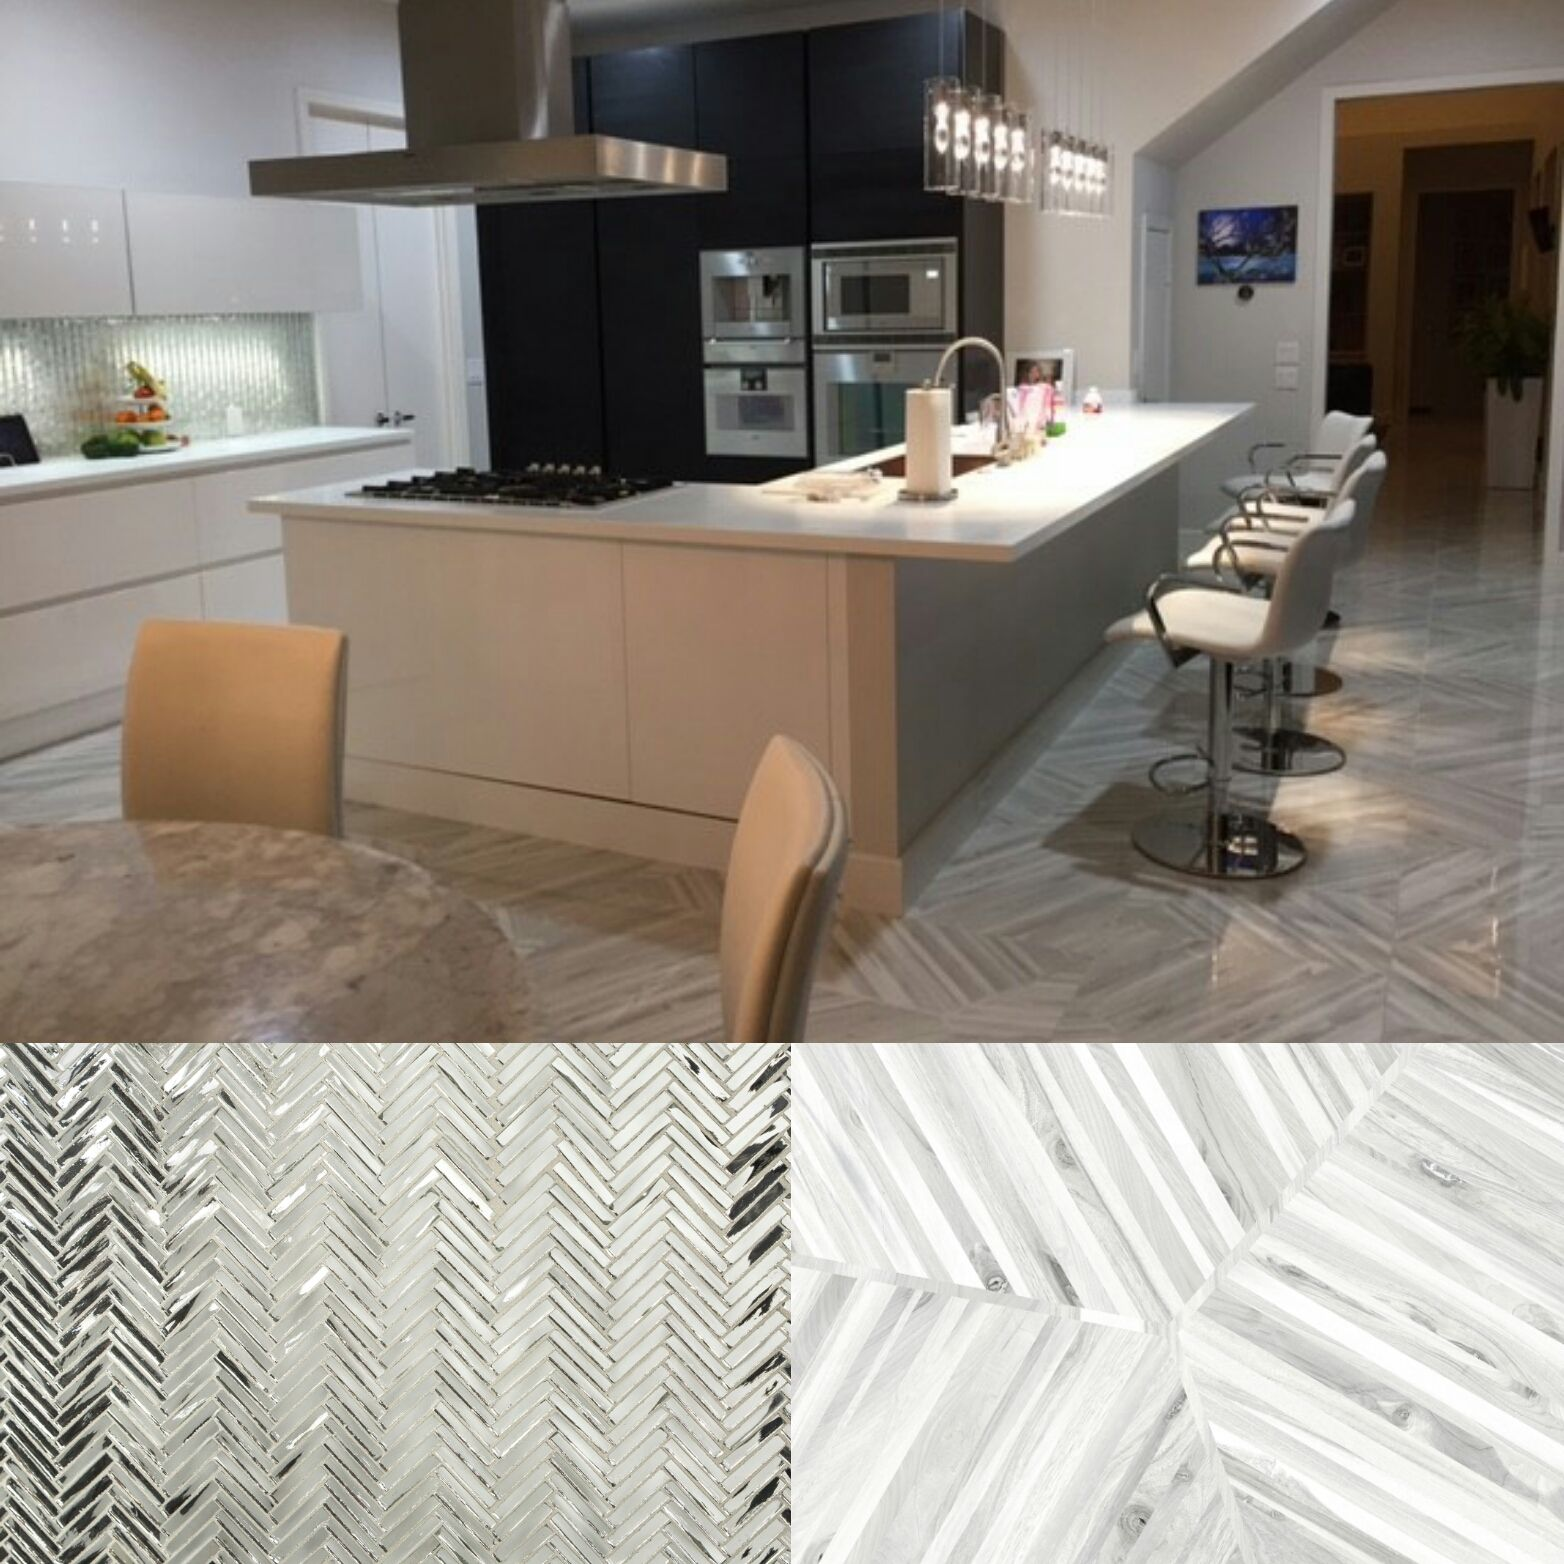 Visual eye candy how to tile a herringbone floor part i - Dallas Homeowners Play Up The Greys With Our Kauri White Porcelain Floor Tile And Glamourous Hip